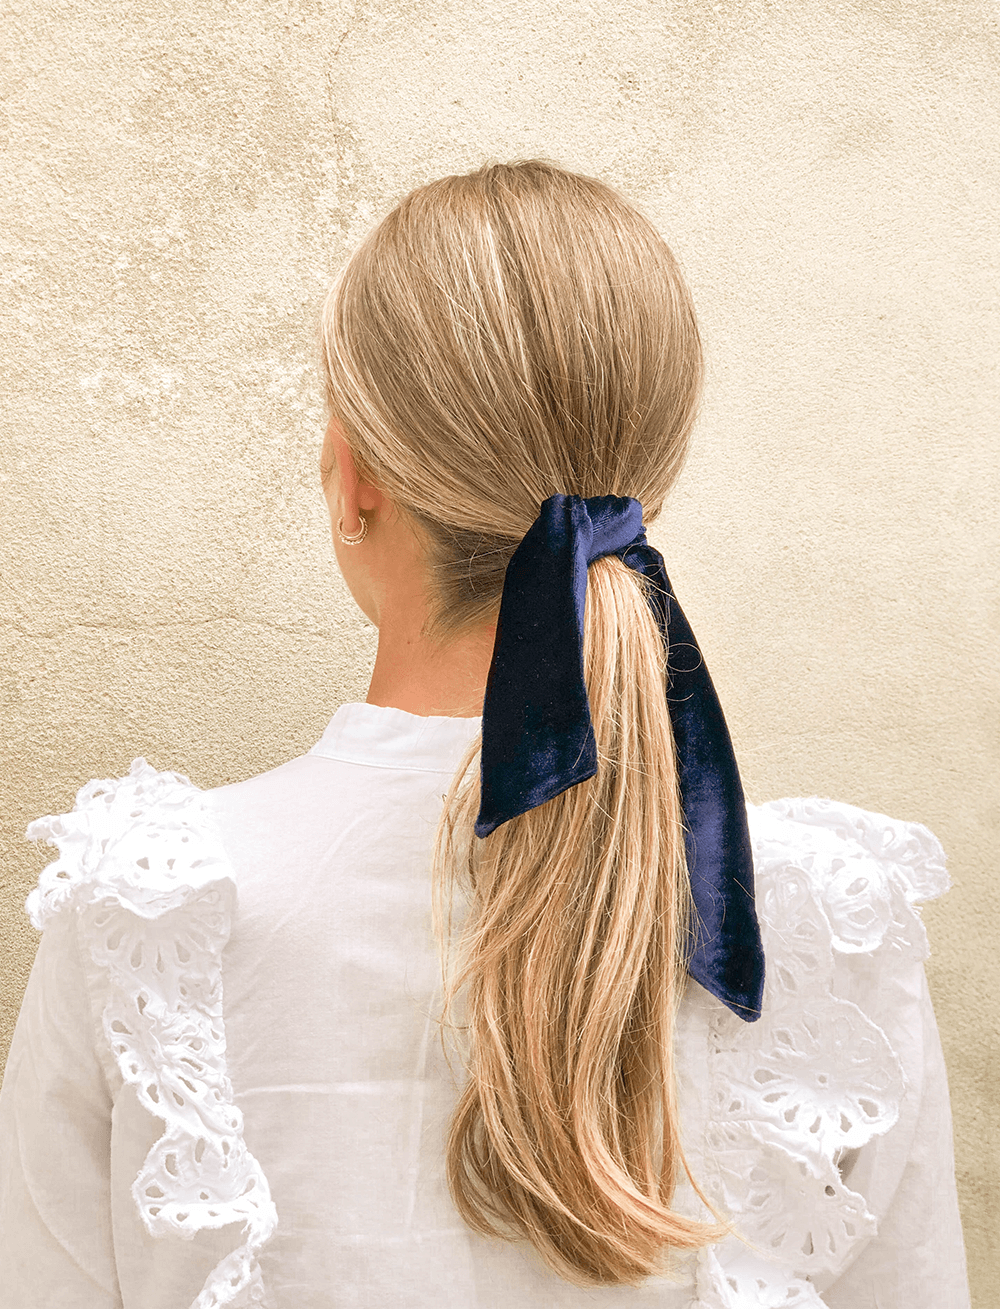 Lio Mara Navy Blue Silk Velvet Hair Tie For Ponytail